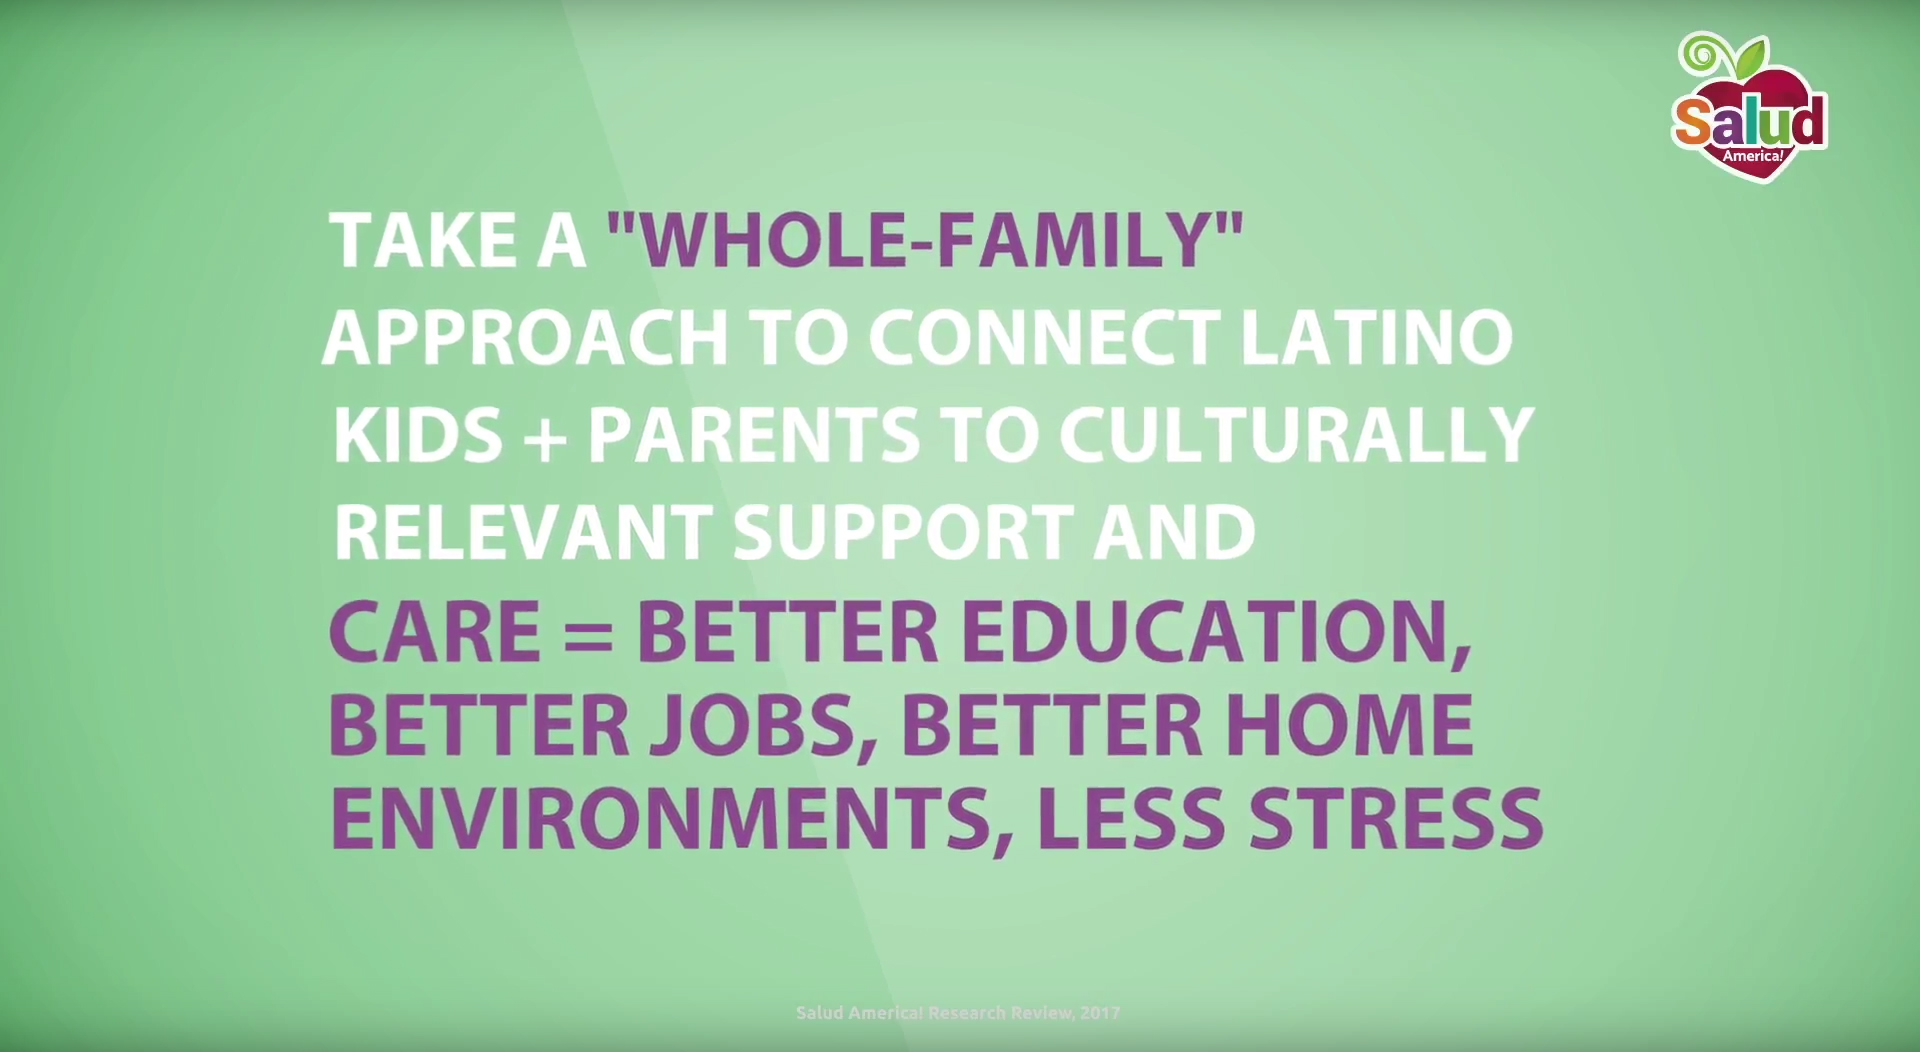 Take action for whole-family support